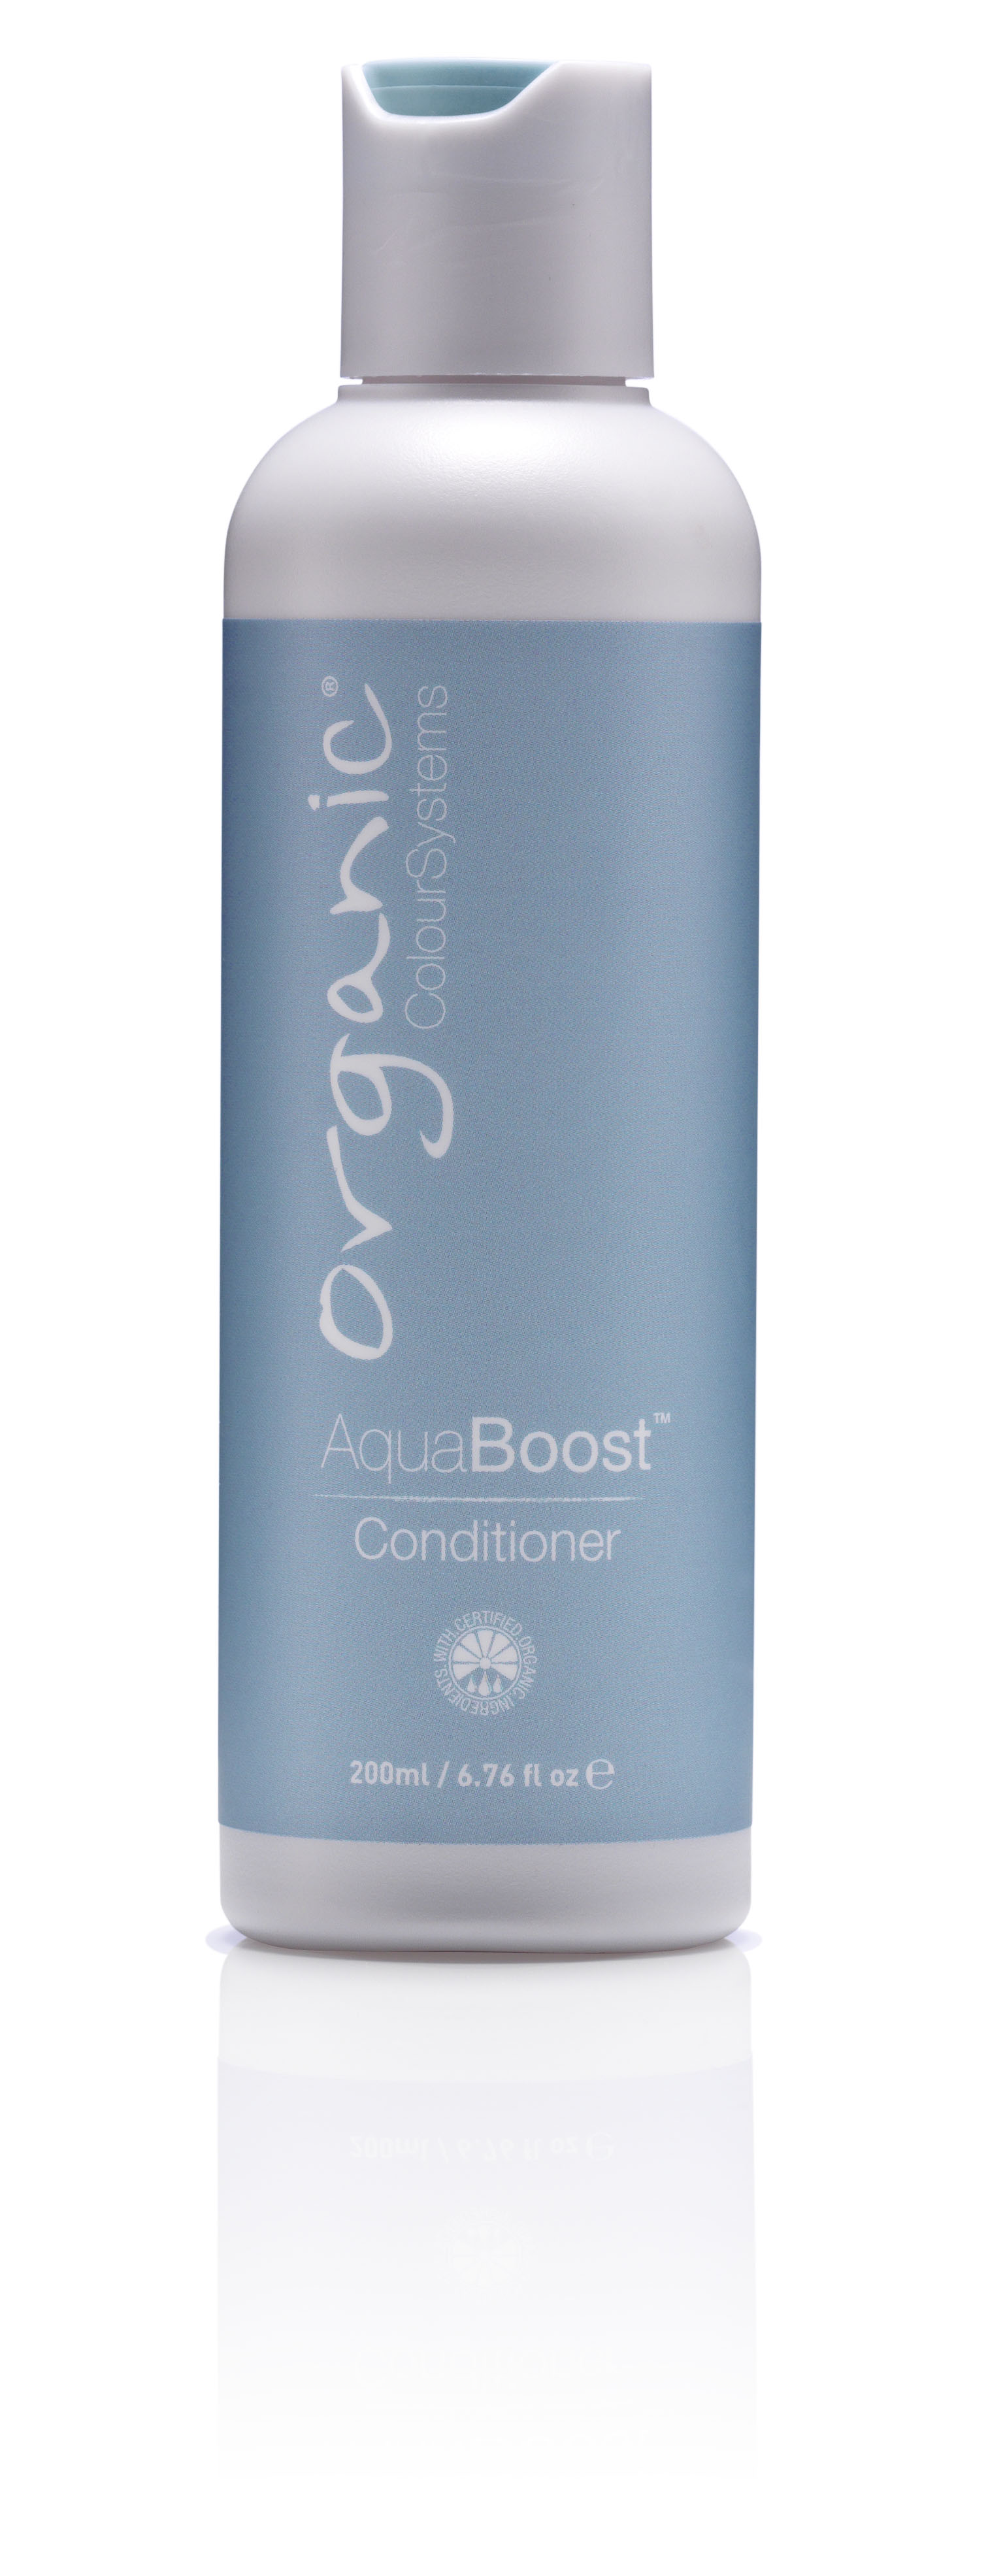 AquaBoost Conditioner